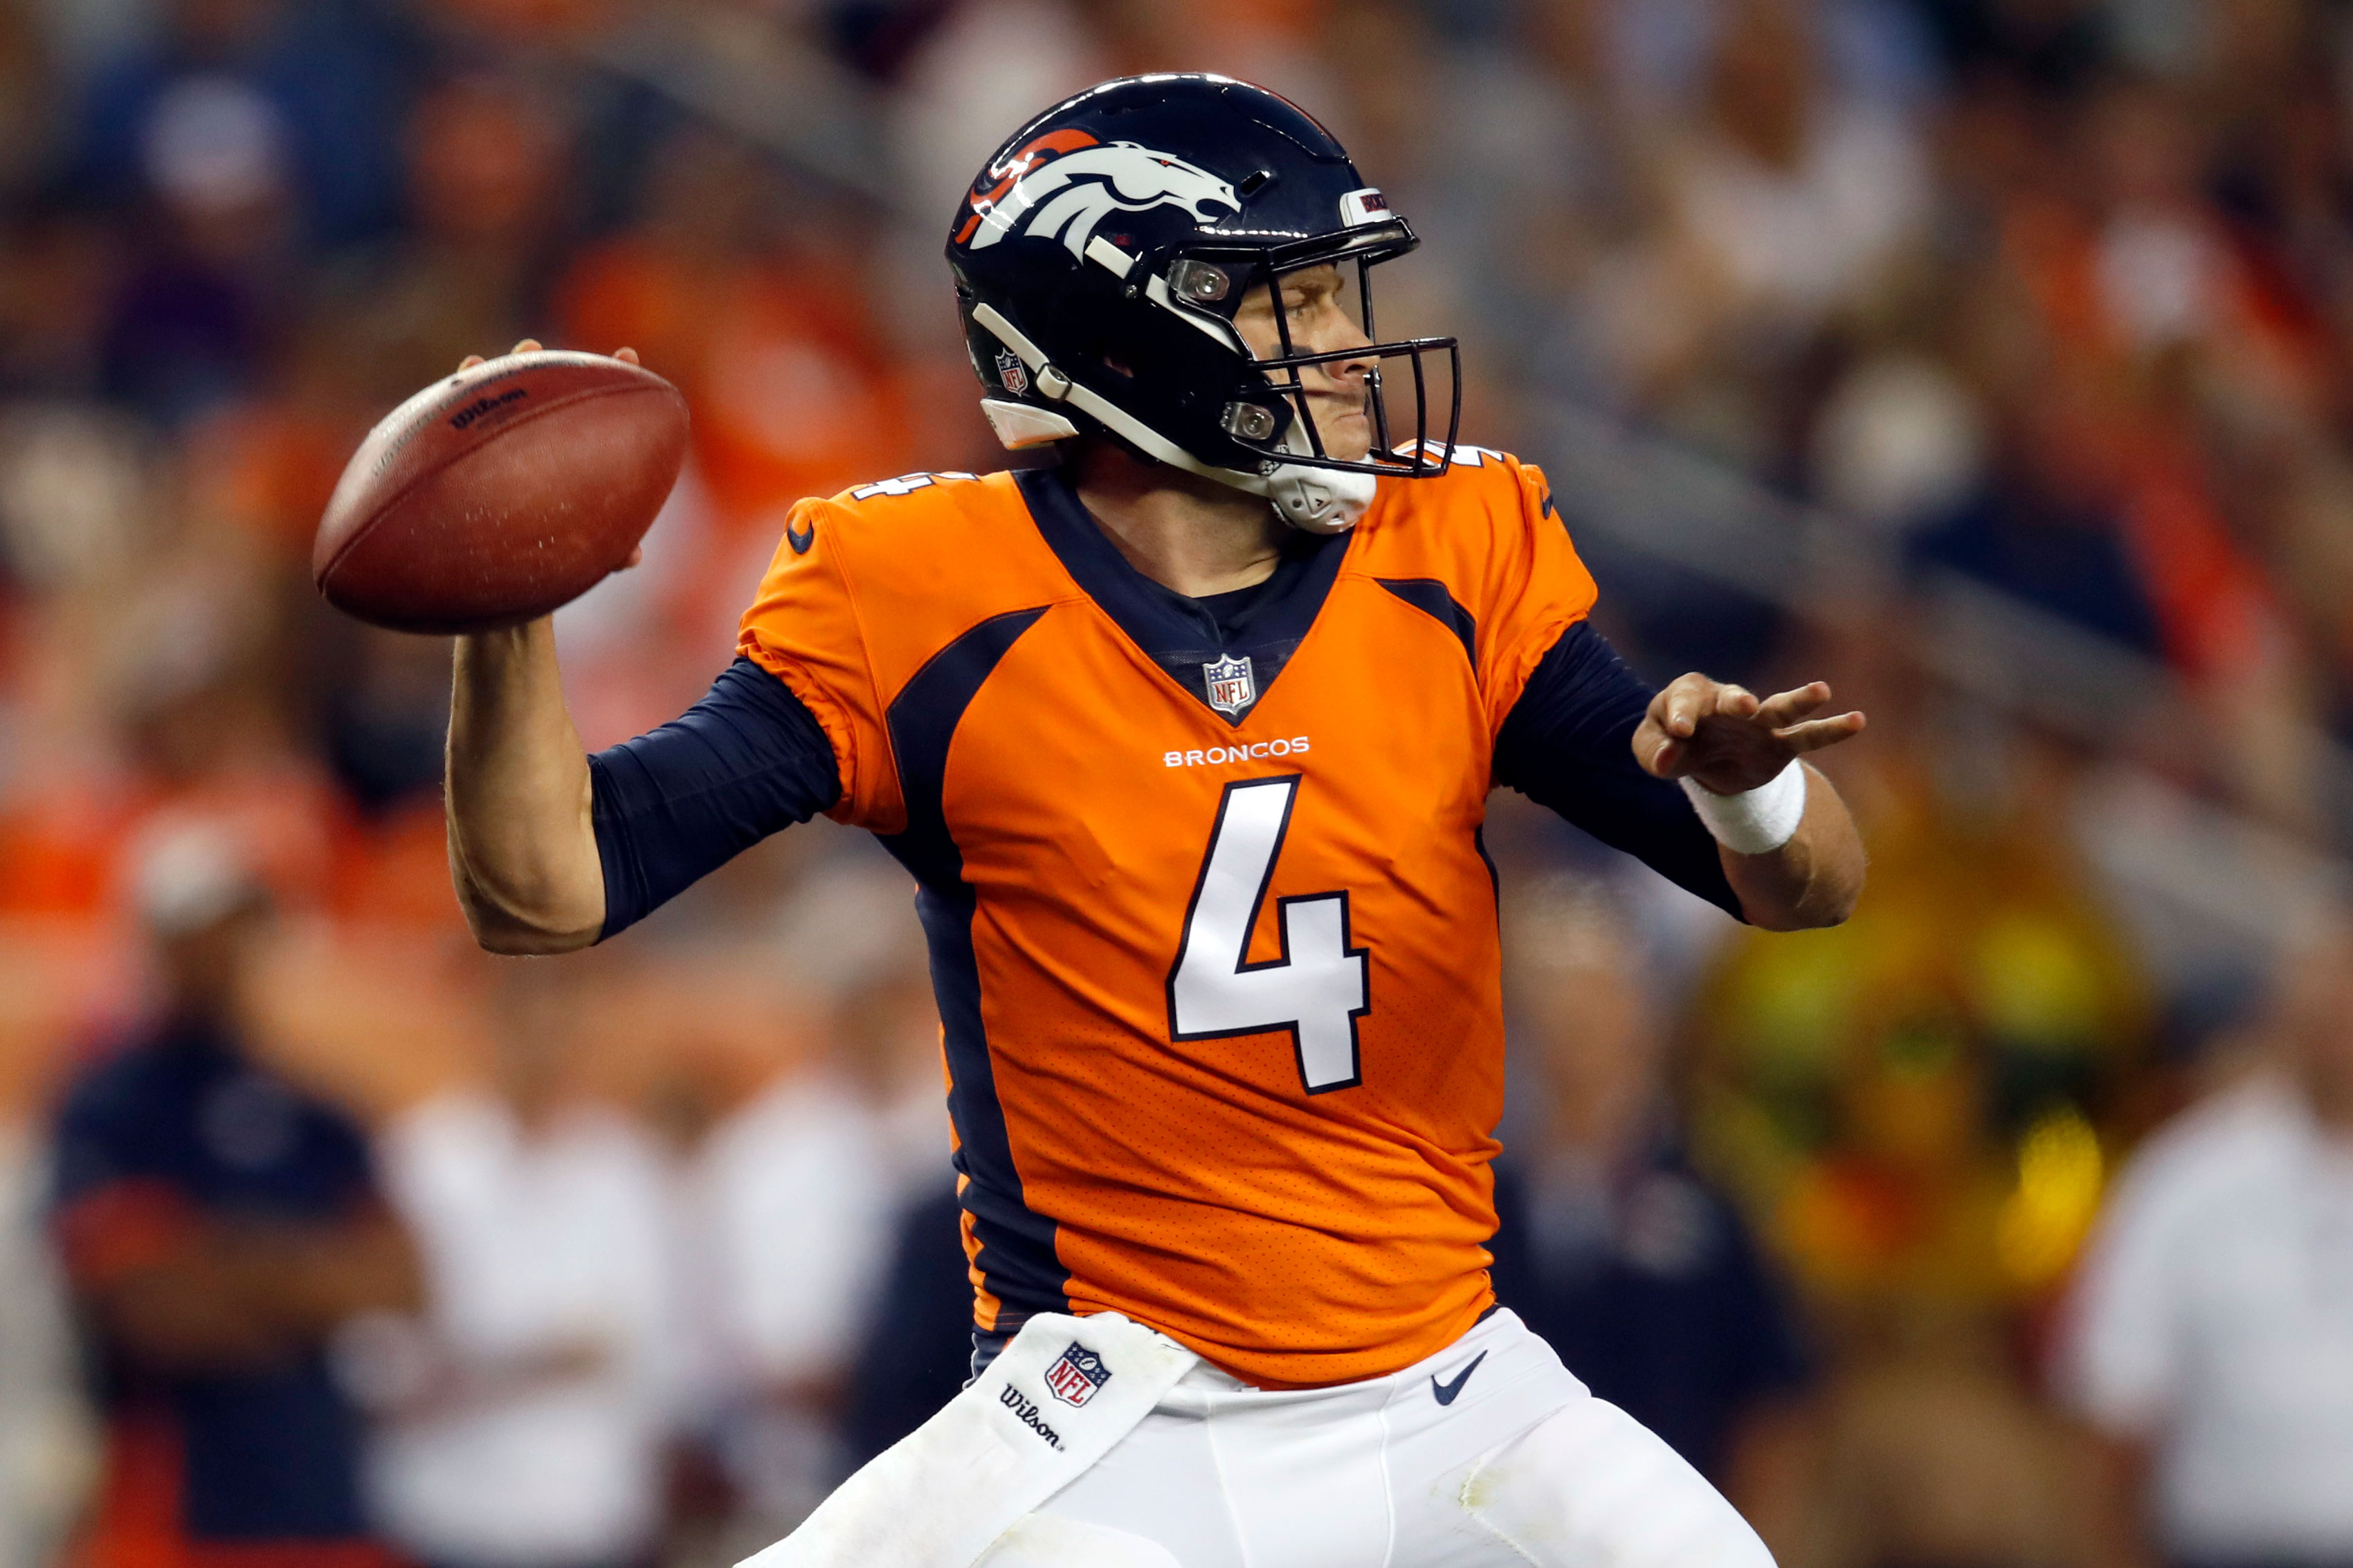 <p>Denver Broncos quarterback Case Keenum (4) throws against the Chicago Bears during the first half of a preseason NFL football game, Saturday, Aug. 18, 2018, in Denver.</p>